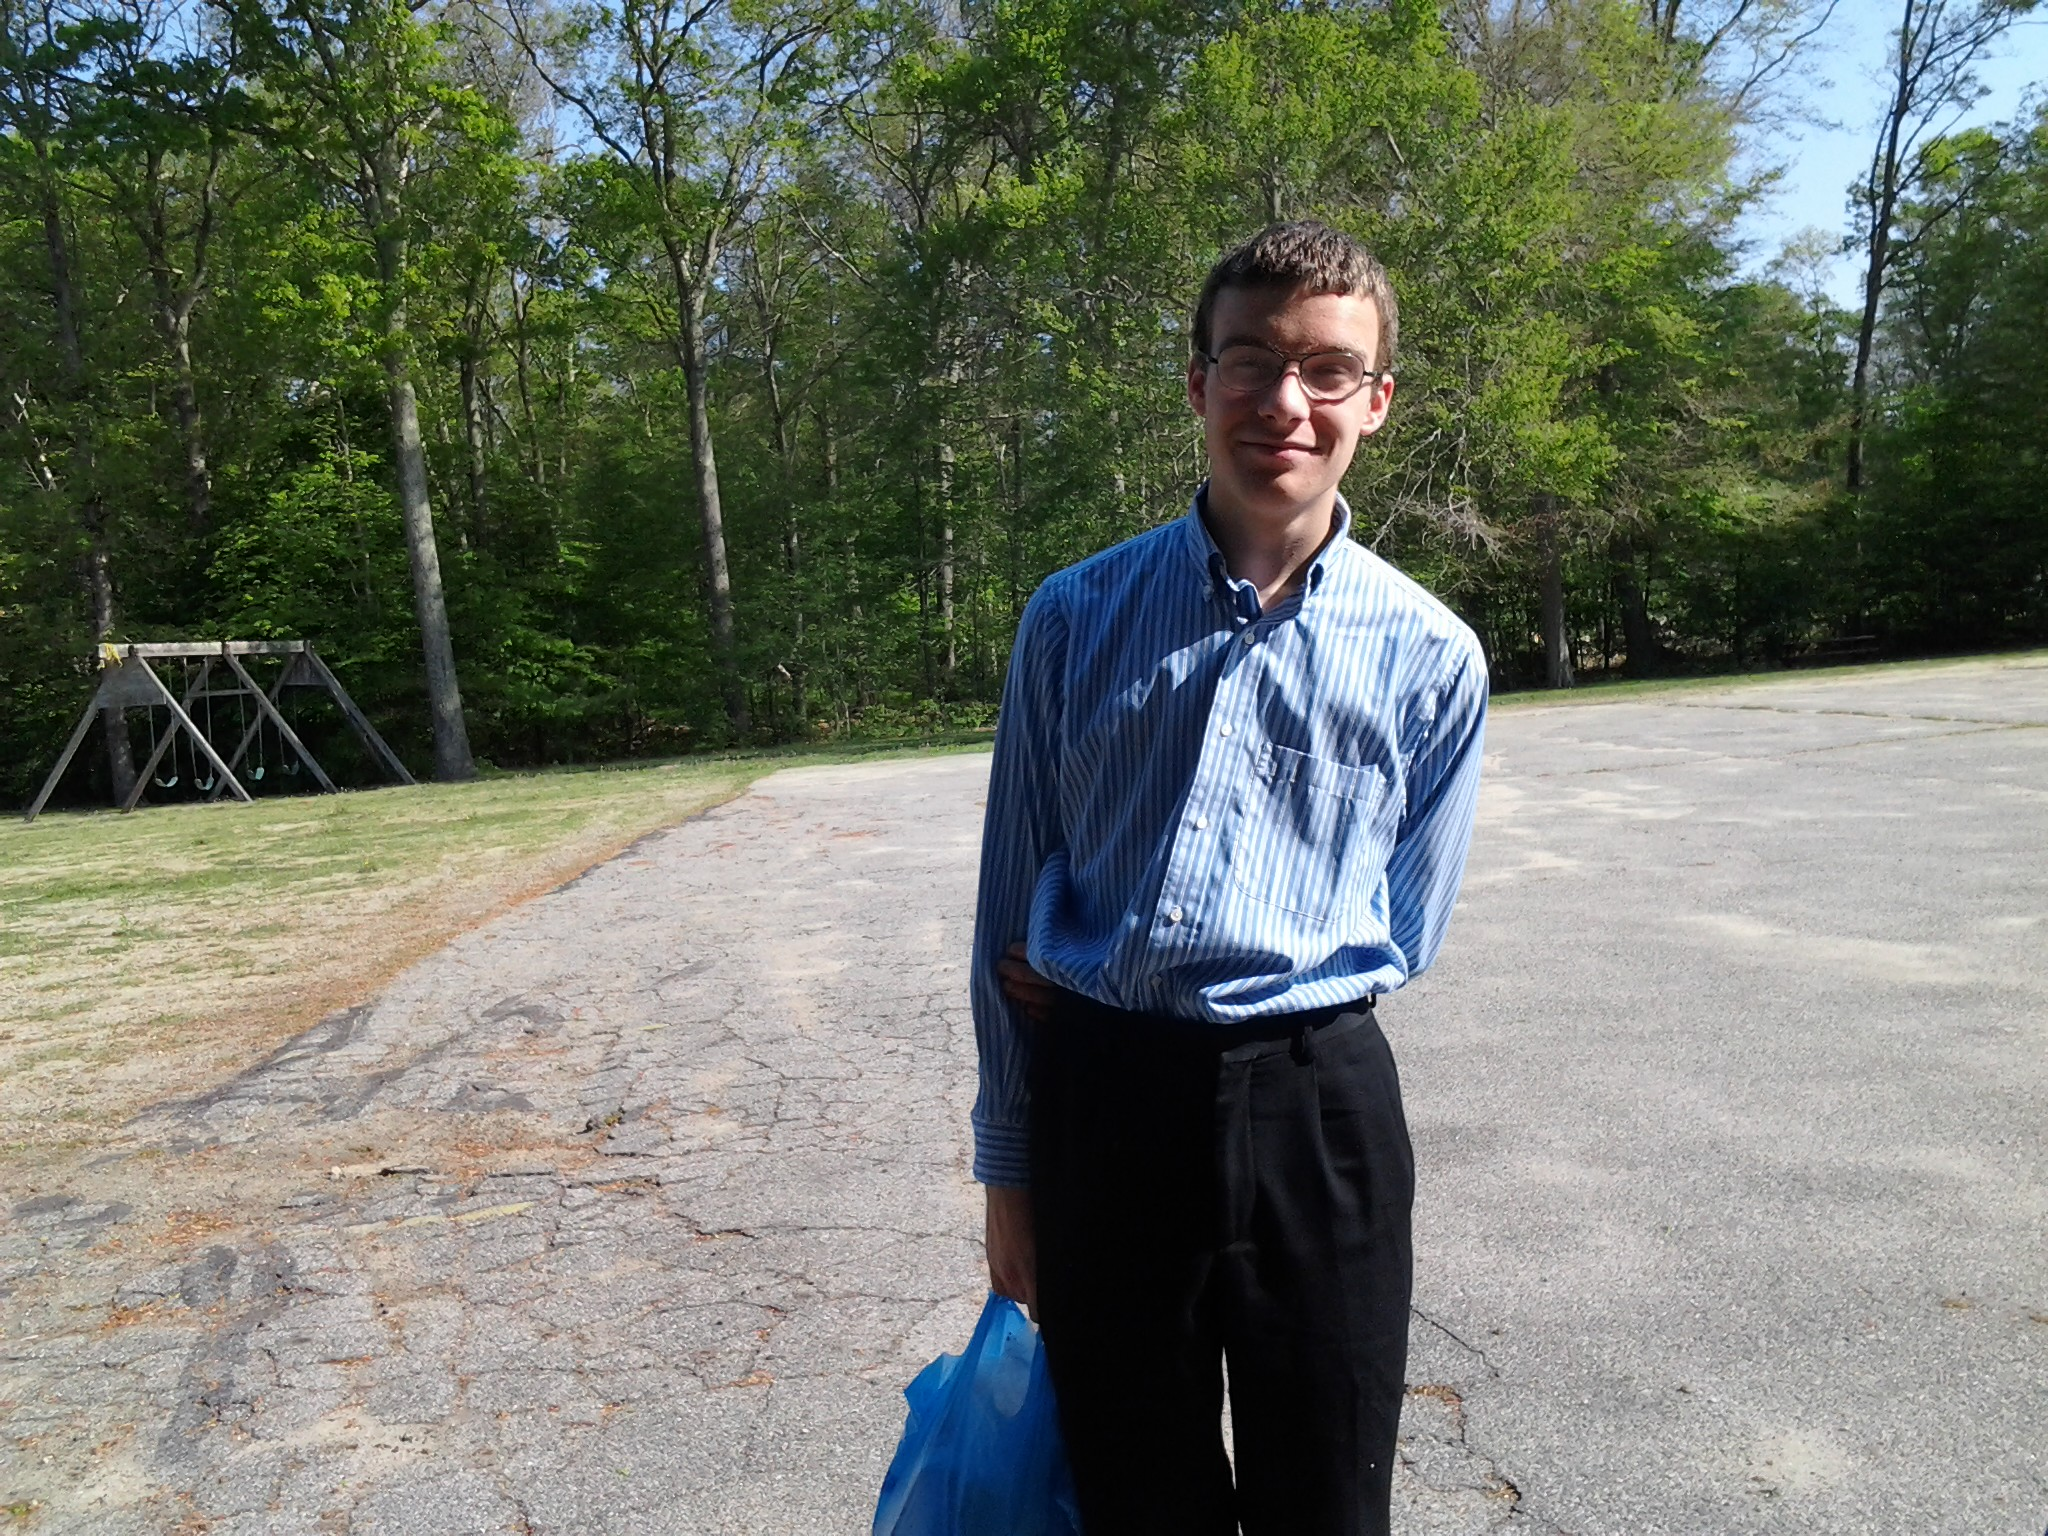 Ben in the church parking lot carrying left over coffee things from the testing coop to the deaconesses at our church since various homeschool groups use the coffee things anyway.